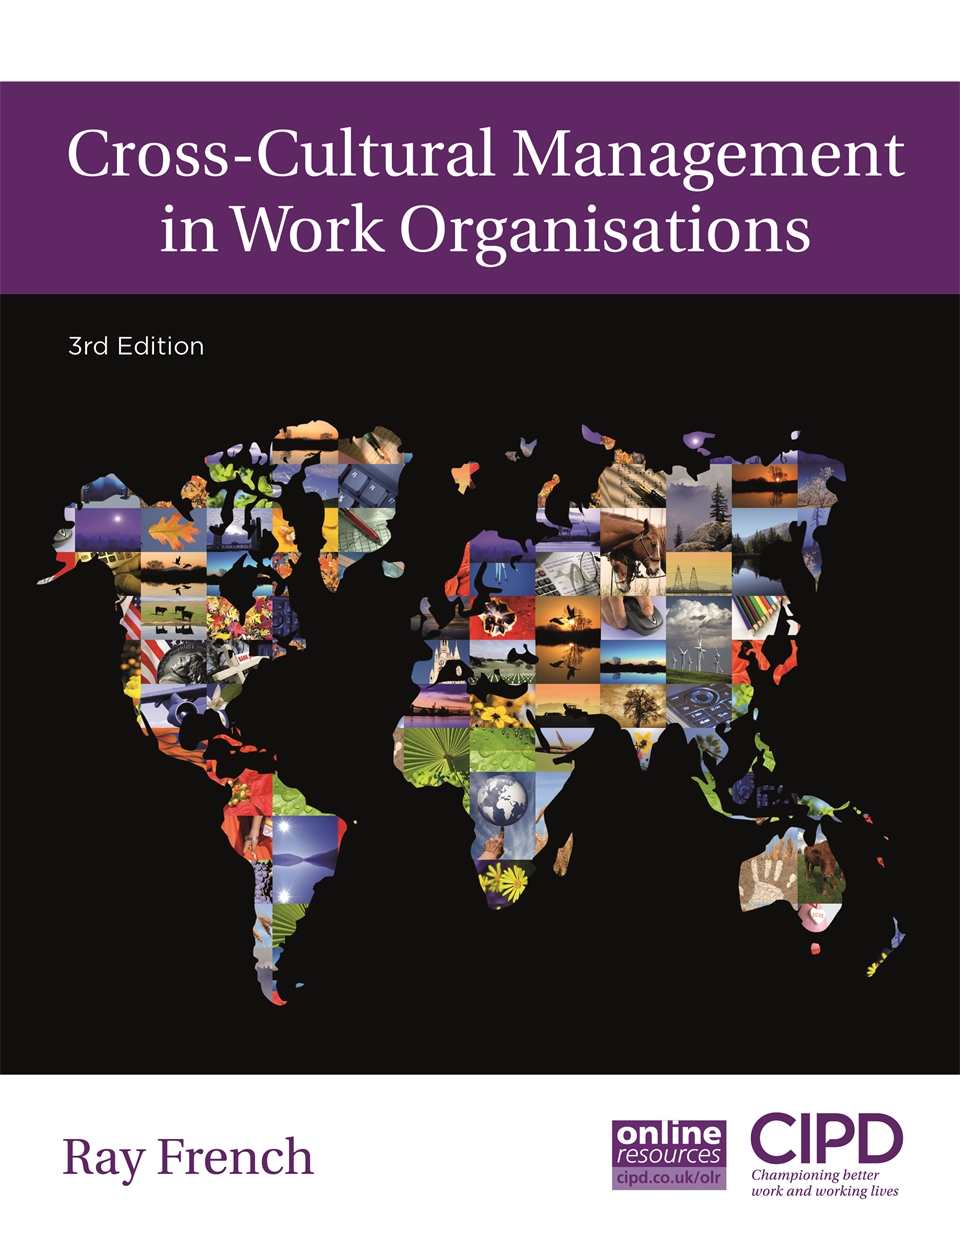 Cross-Cultural Management in Work Organisations (9781843983675)